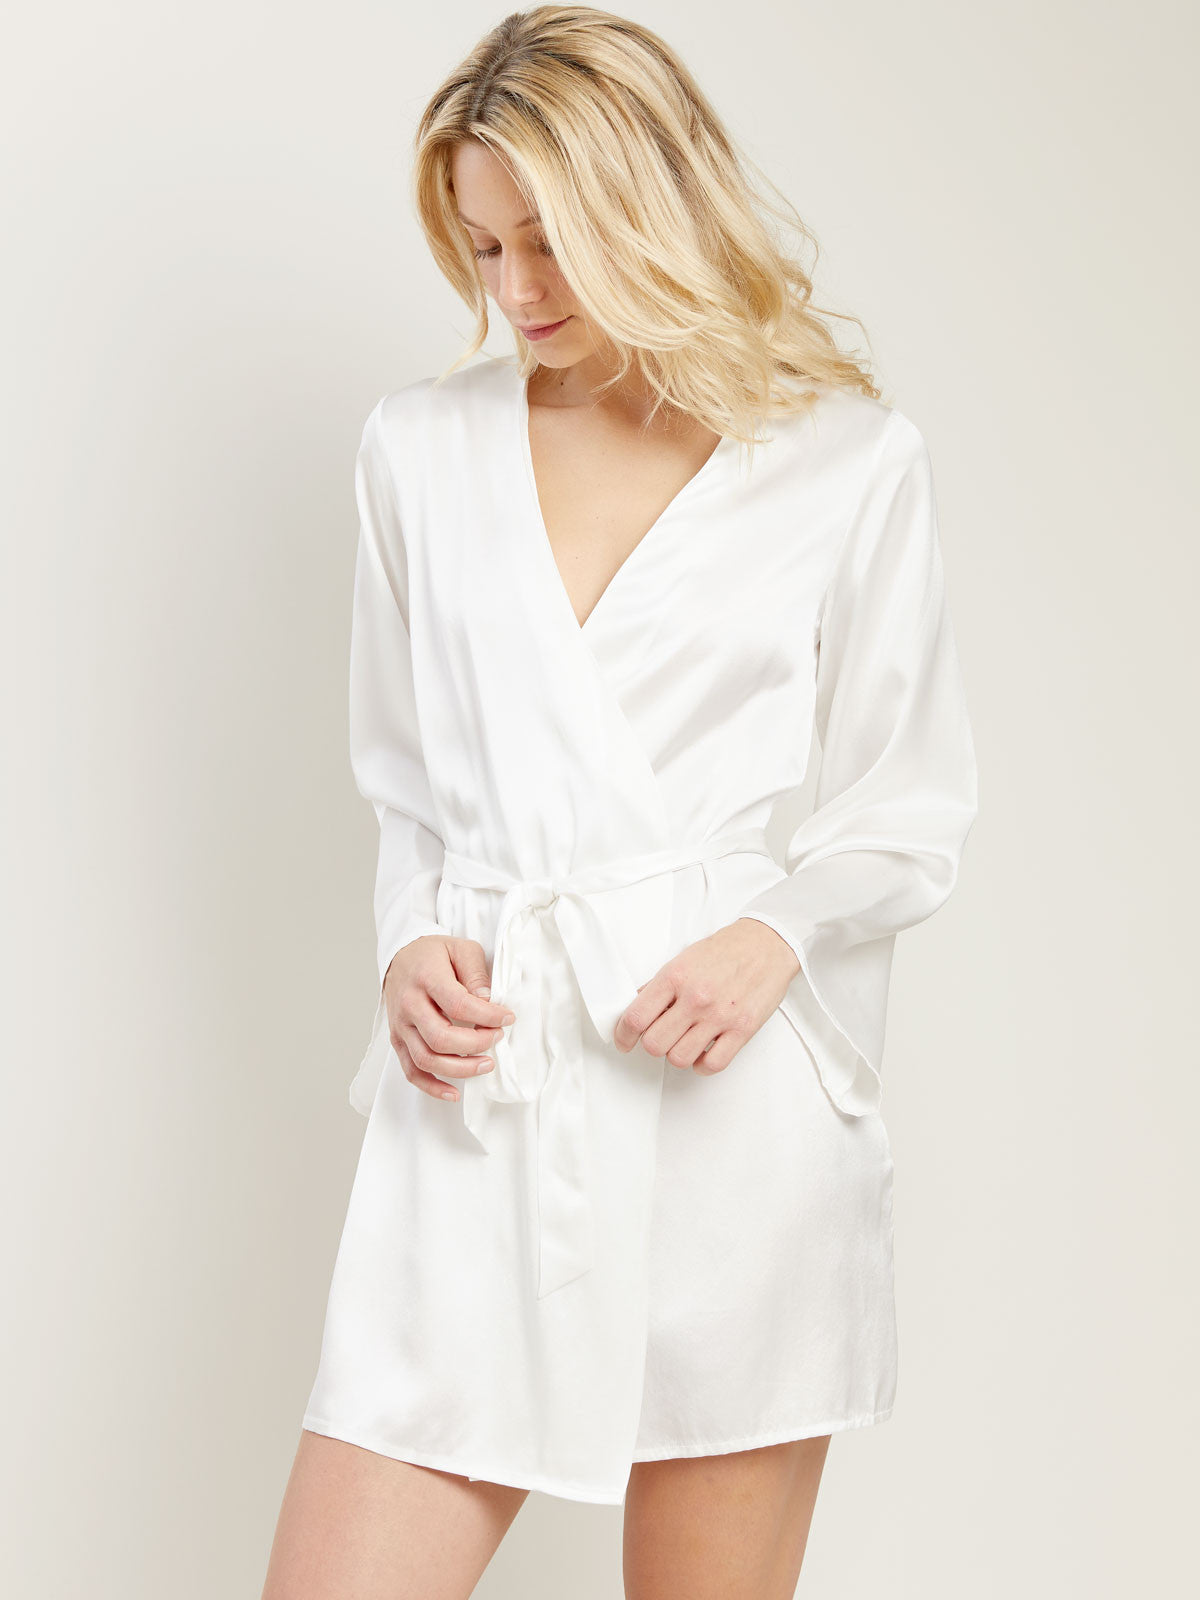 Langley Robe in Chalk